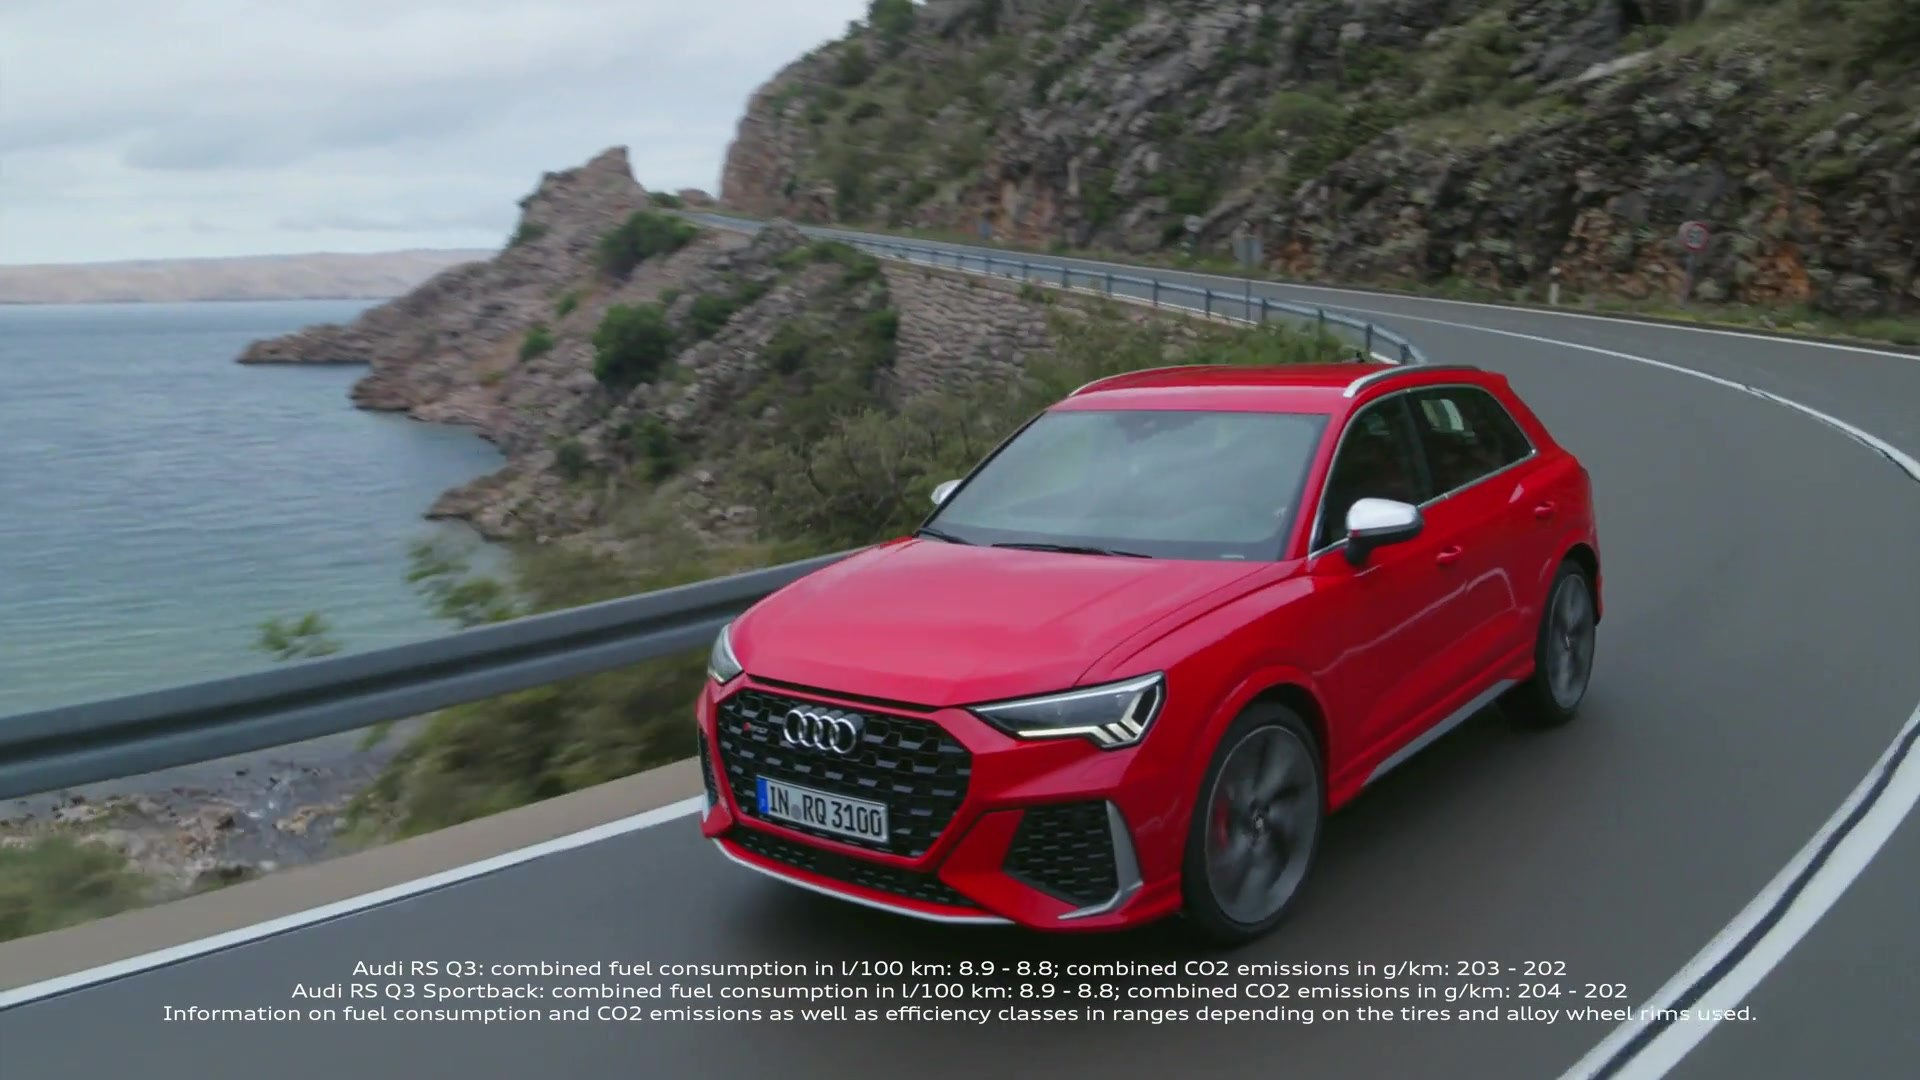 Audi Rs Q3 And Audi Rs Q3 Sportback Trailer Video Dailymotion